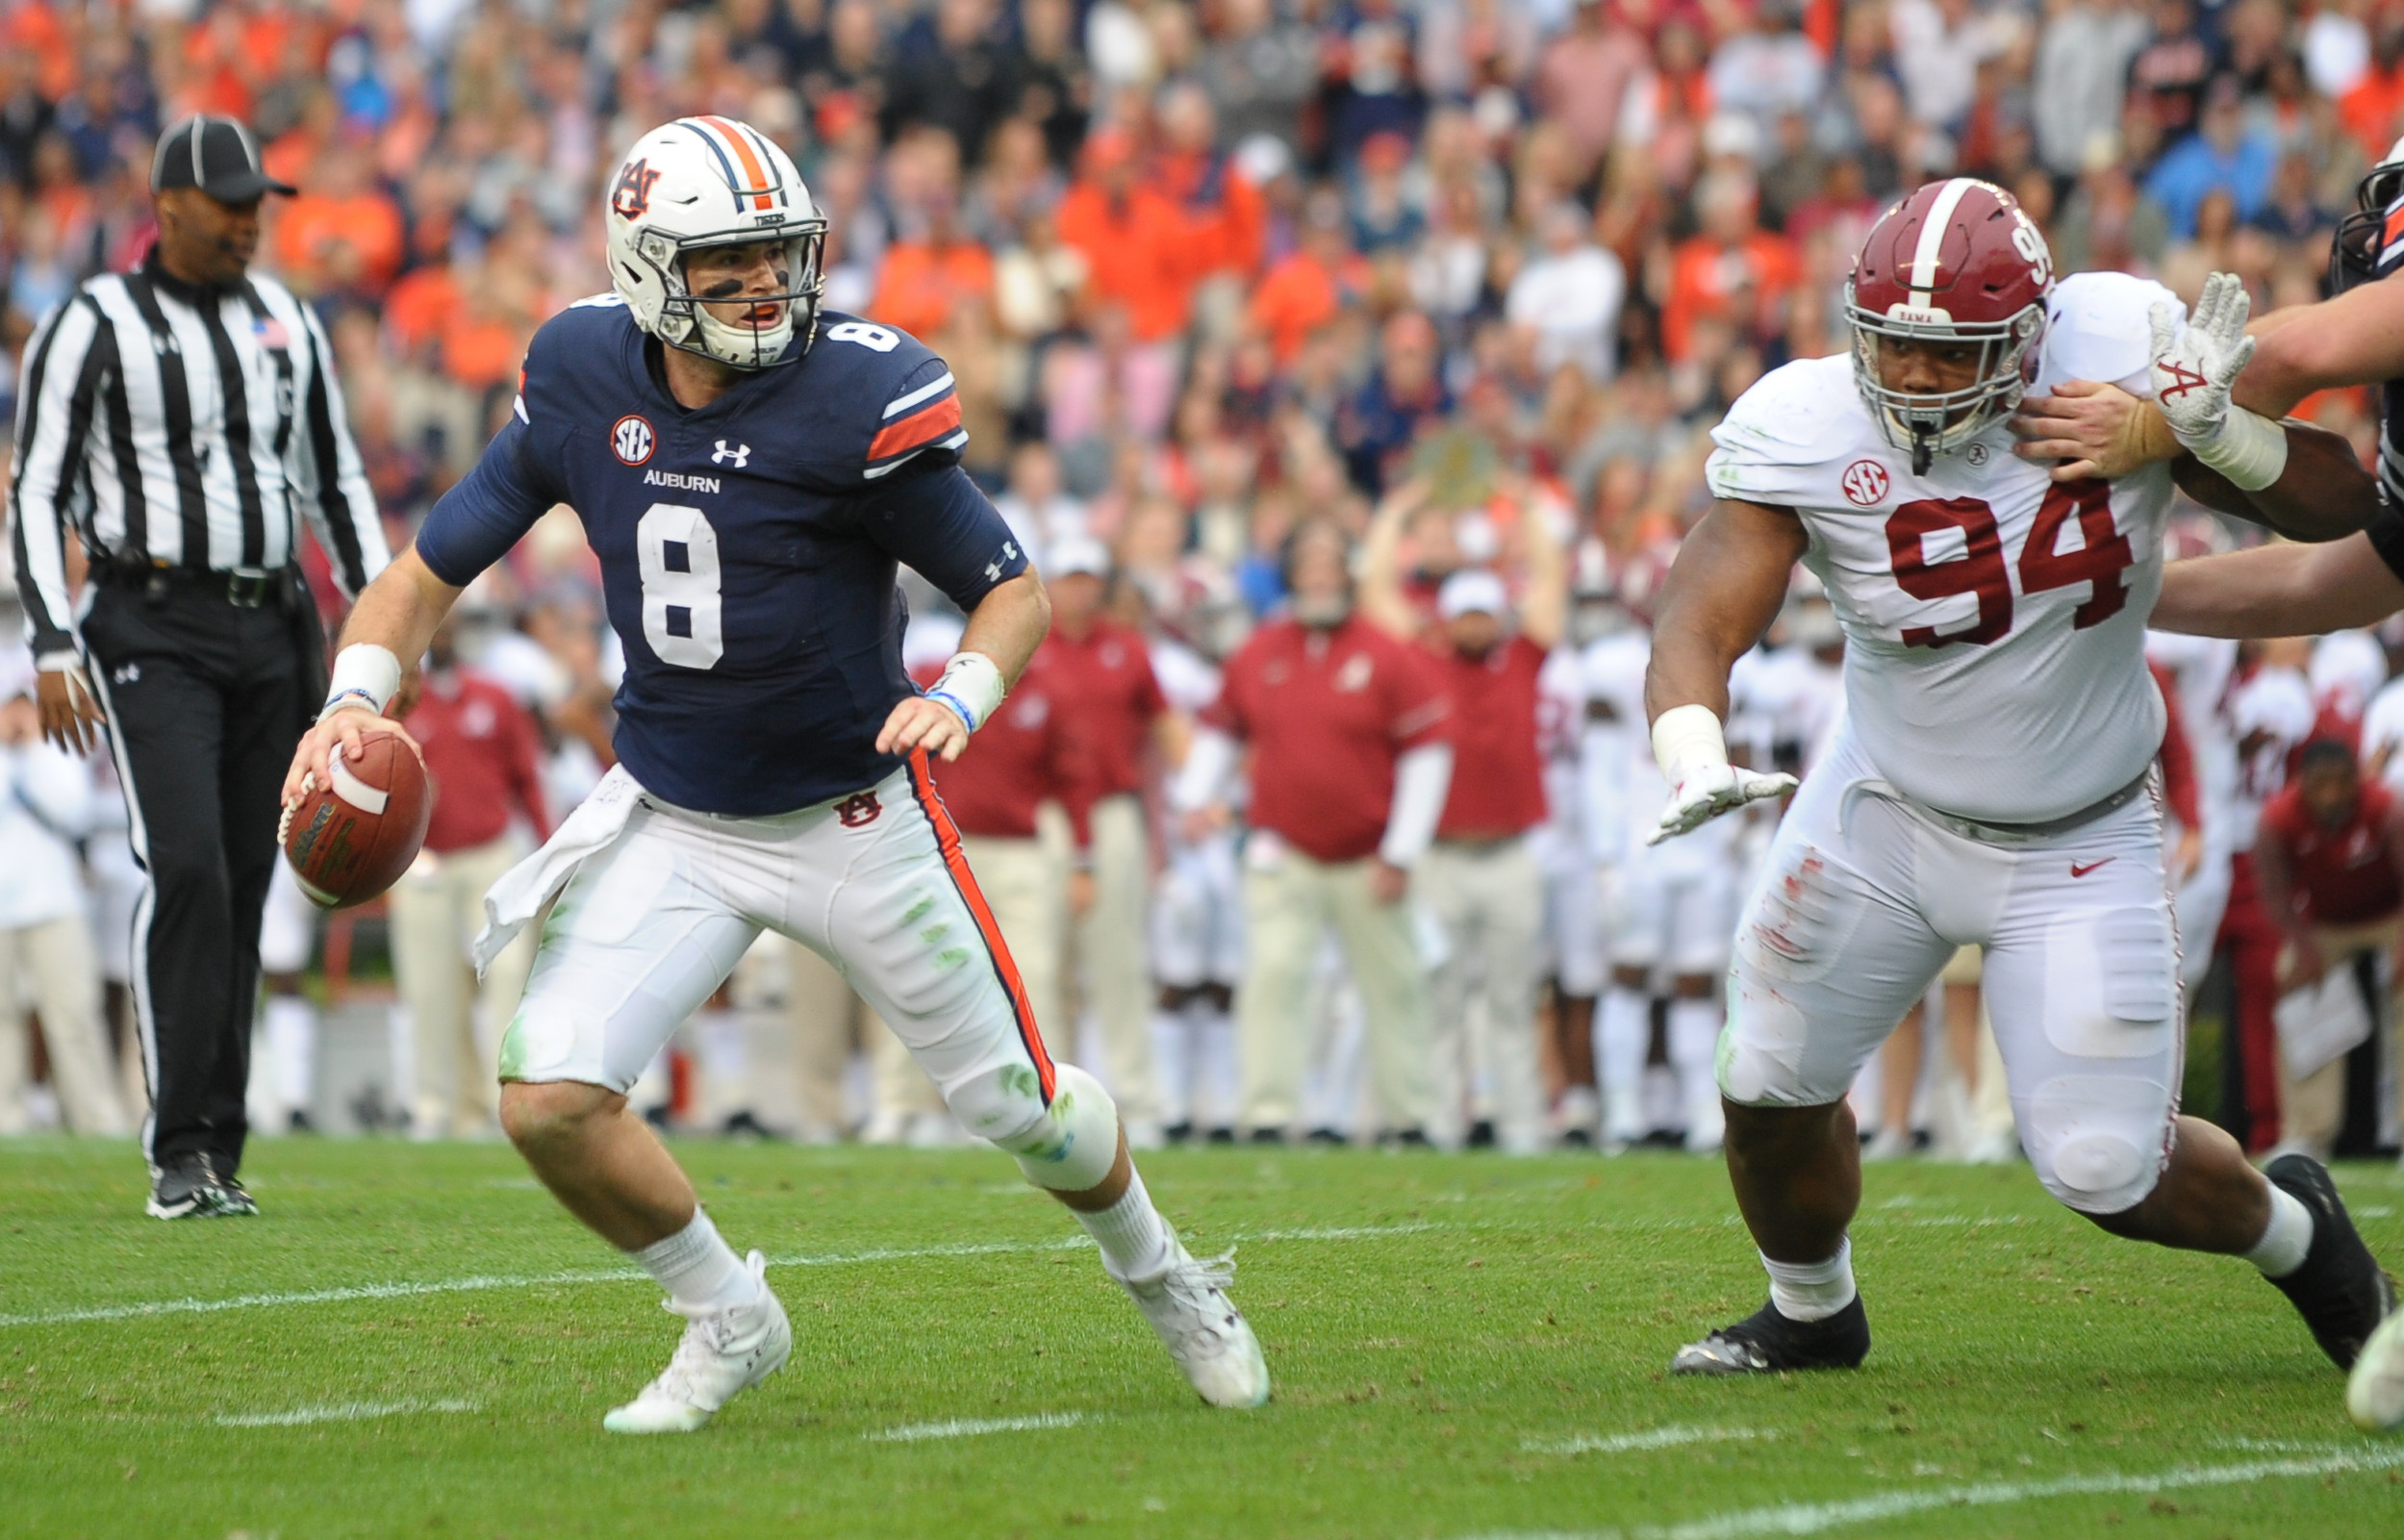 Auburn Tigers quarterback Jarrett Stidham (8) runs away from Alabama Crimson Tide defensive lineman Da'Ron Payne (94) during the first half of Saturday's game, at Jordan-Hare Stadium.